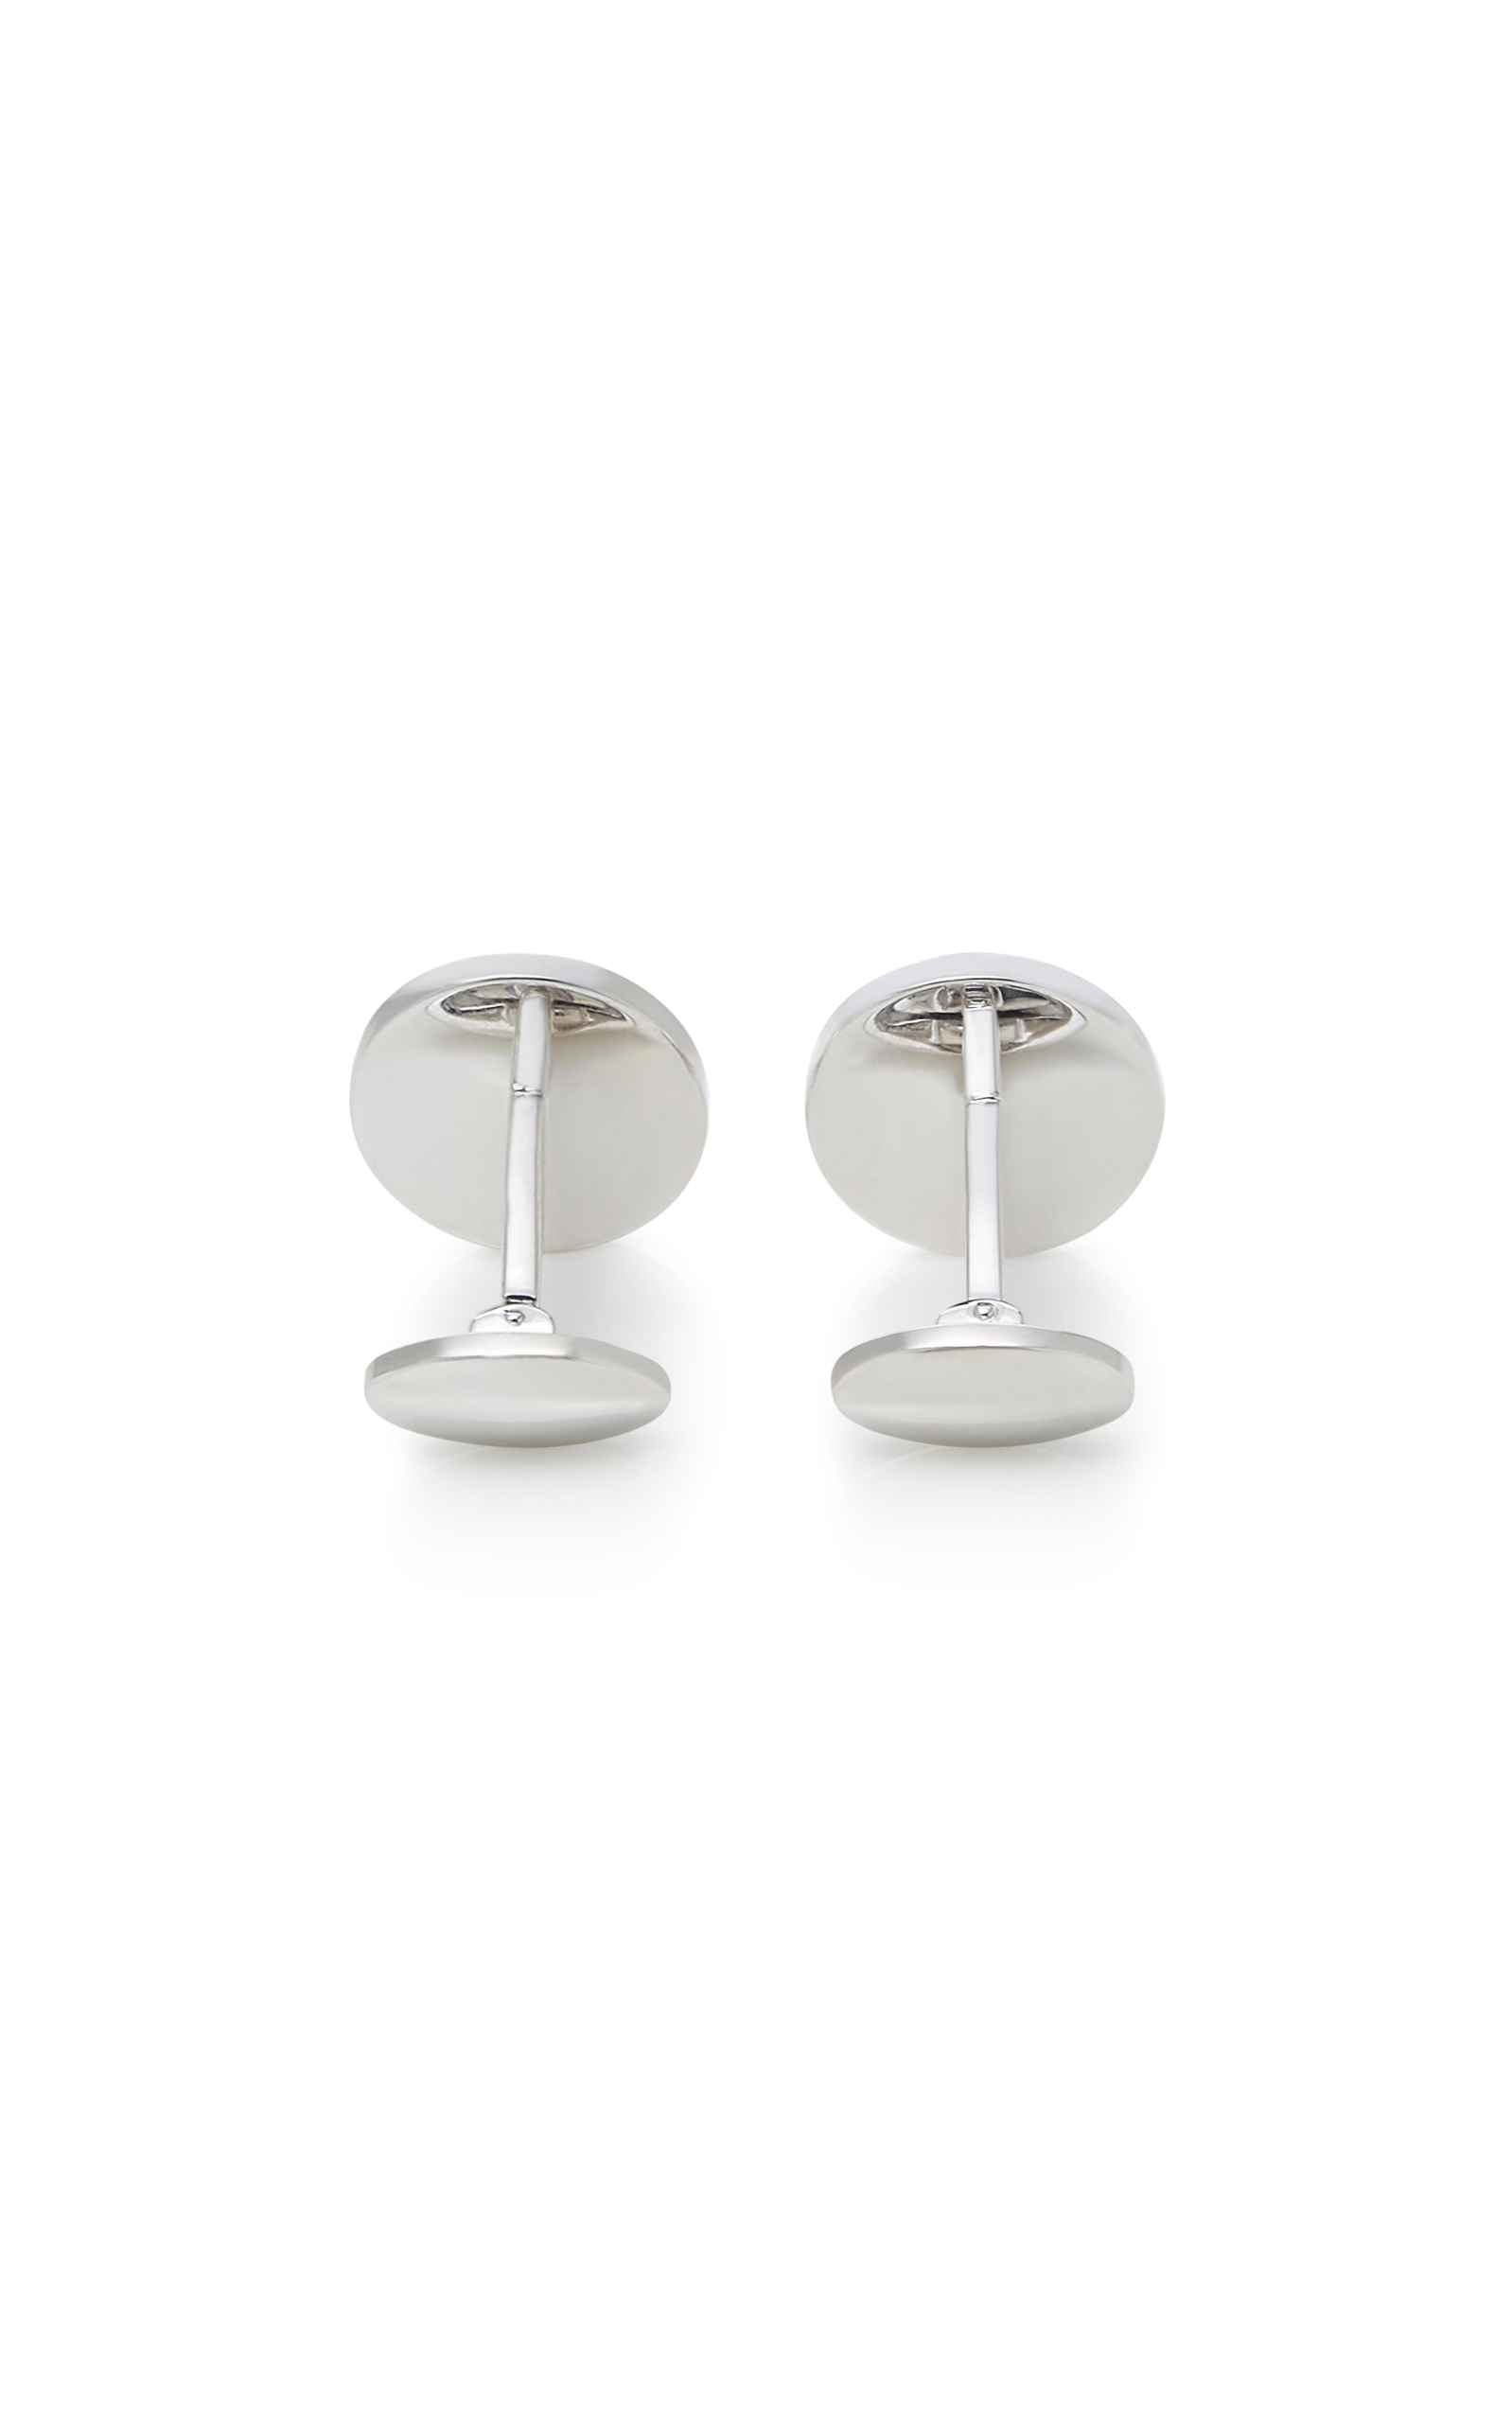 Discount In China With Paypal Cheap Price Round Onyx Screw Sterling Silver Cufflinks Jan Leslie GiEfMK